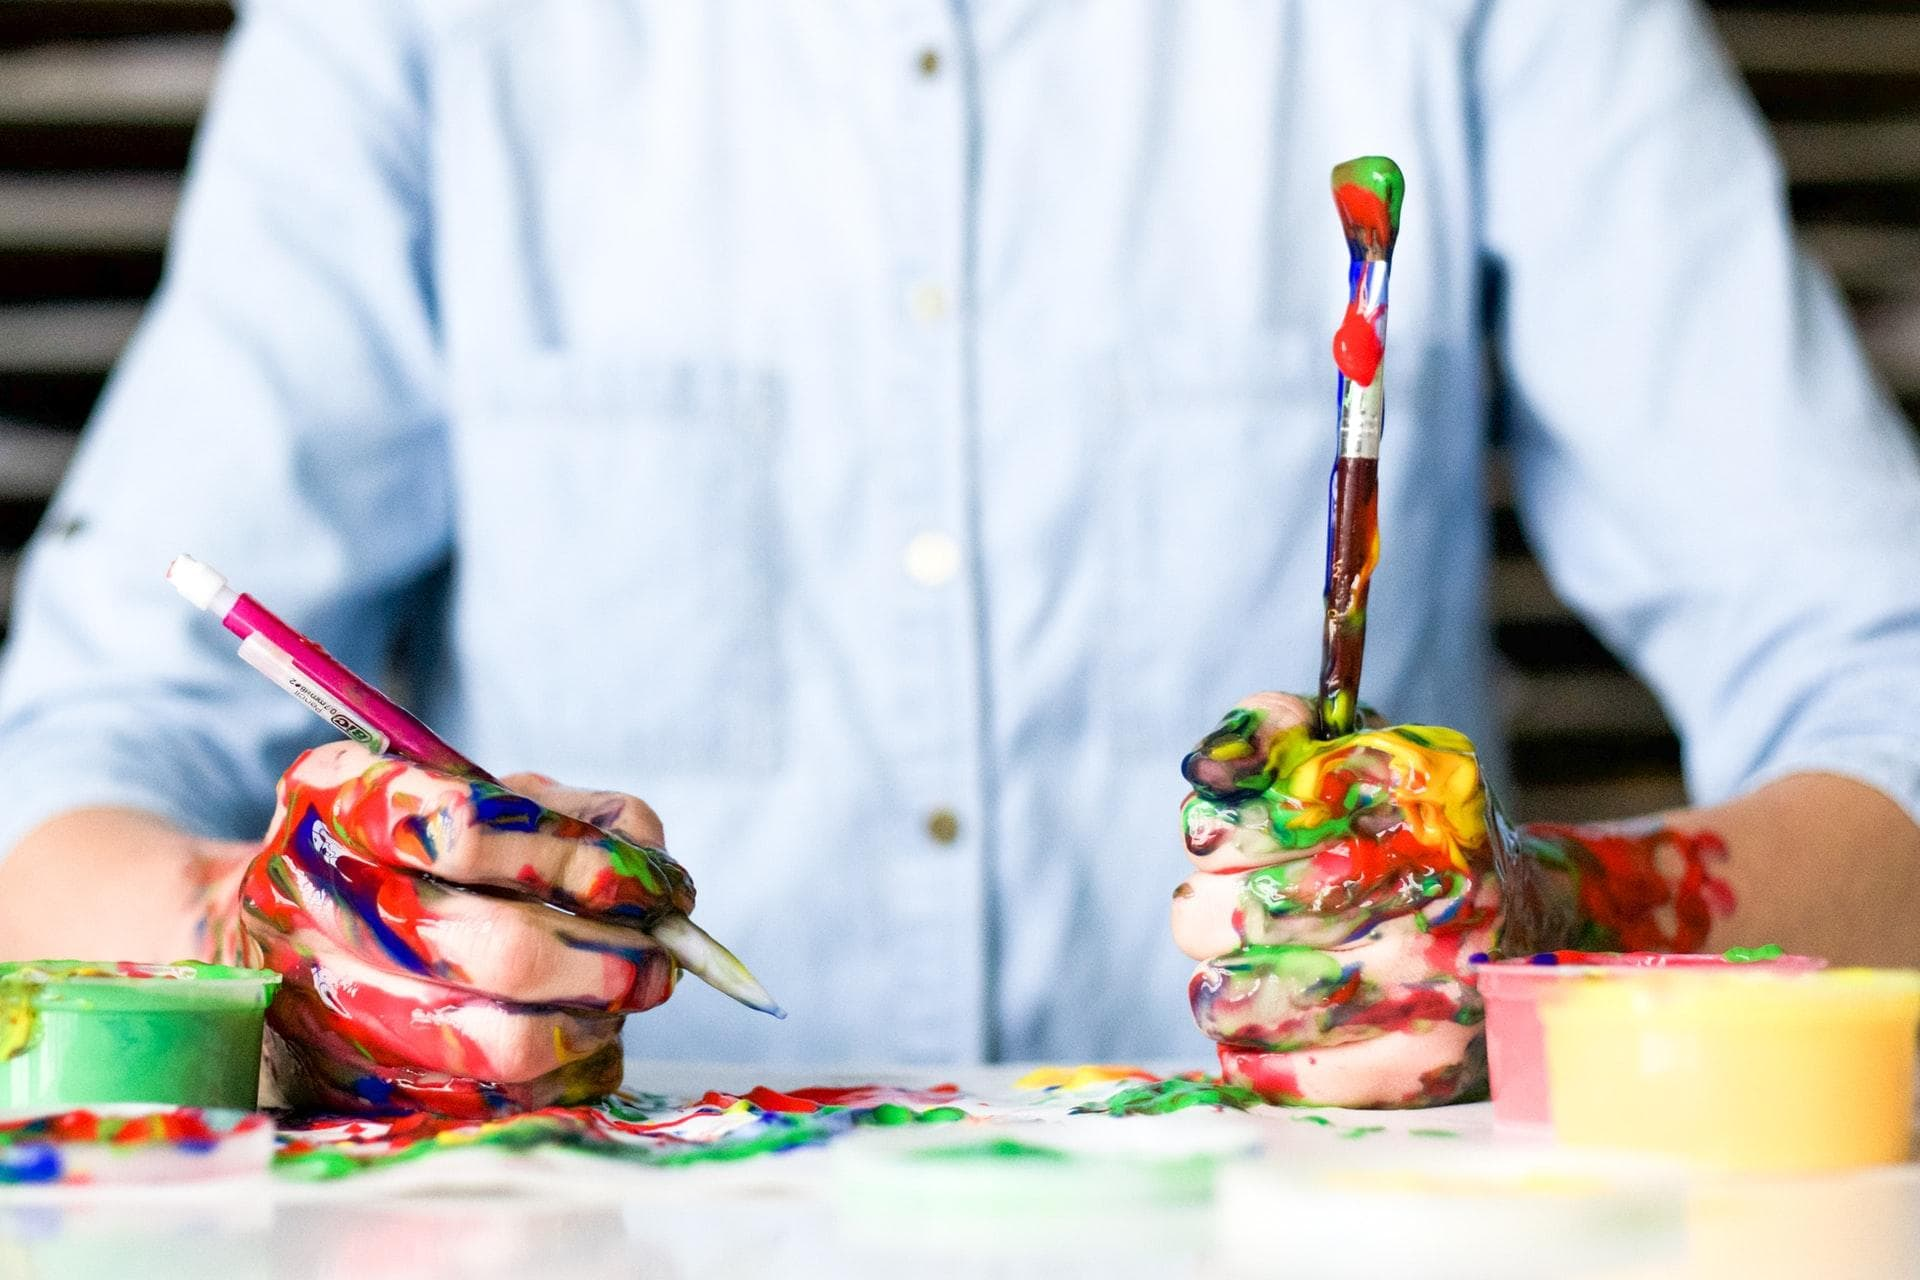 Man holds painted mess